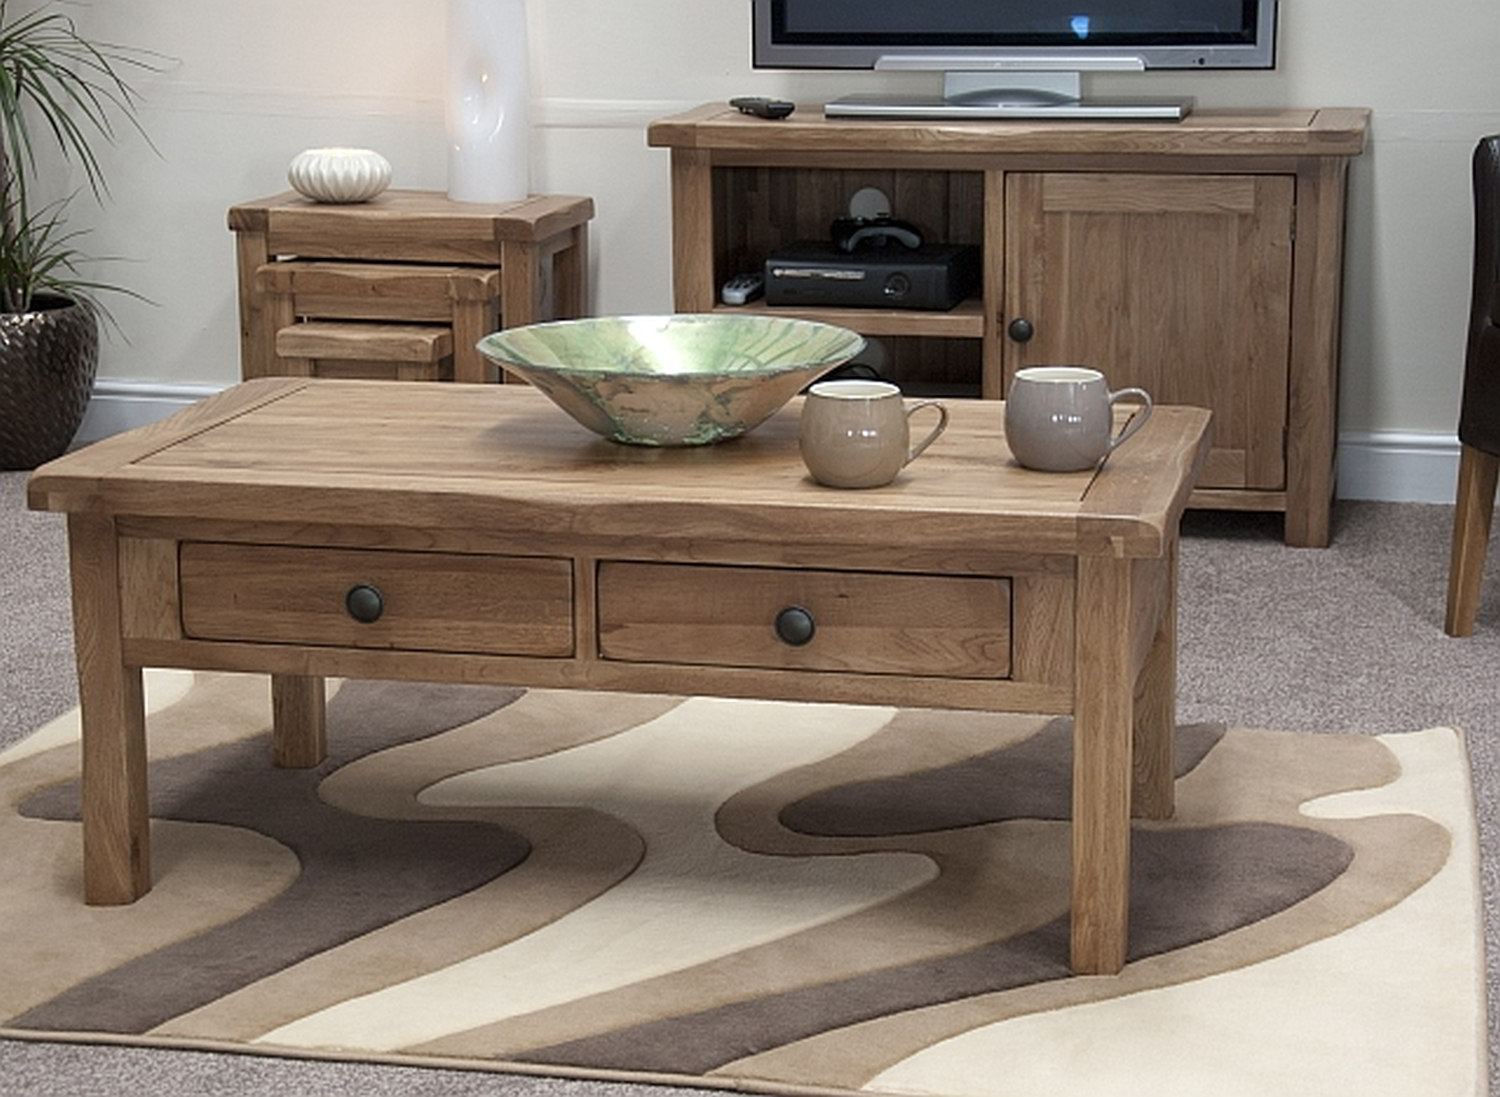 High Quality Of High End Coffee Tables With Drawers On Cool Rug & High End Coffee Tables | HomesFeed